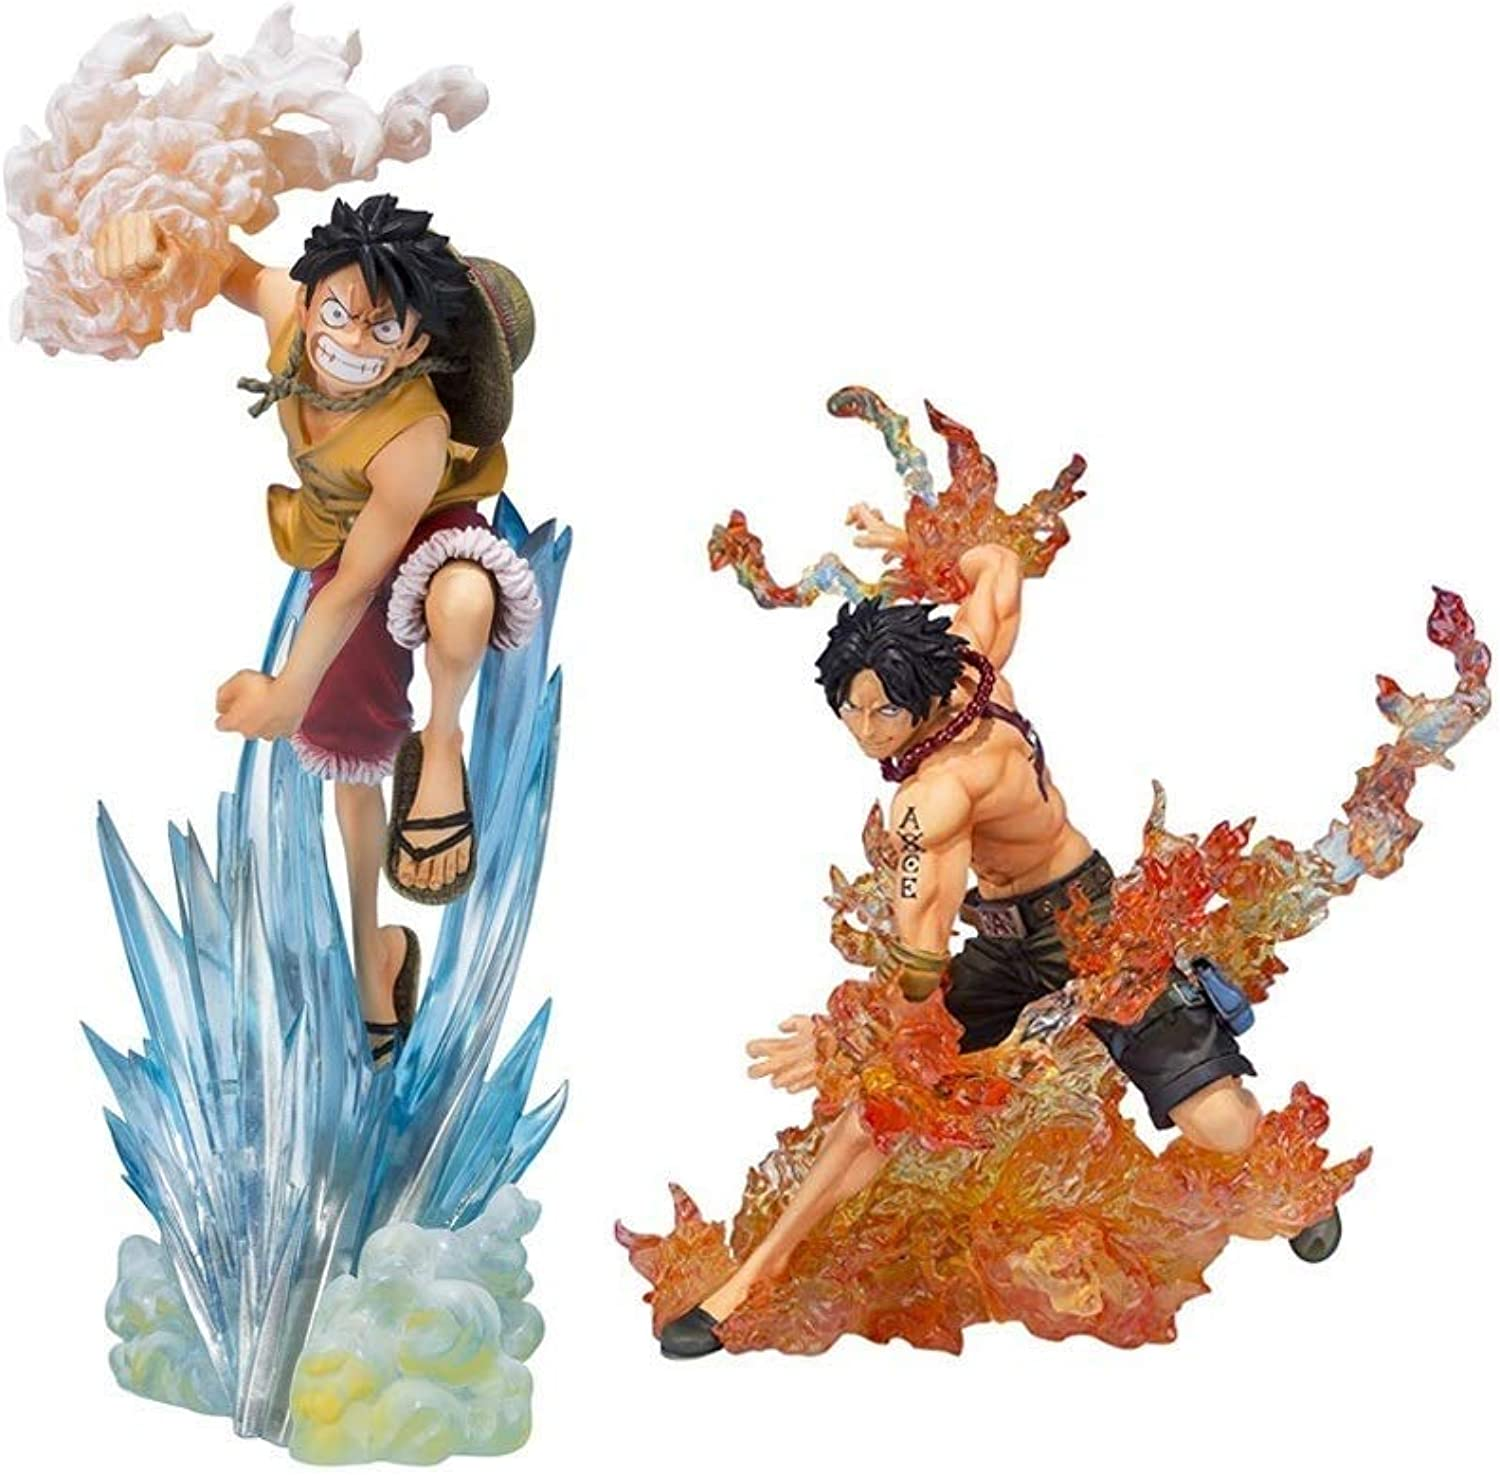 GABENG Anime Character Souvenir Crafts Ornament Toy Figurine Model Statue Nendgoldid Action Figure Onepiece2 Generation Fire Fist Ace Luffy